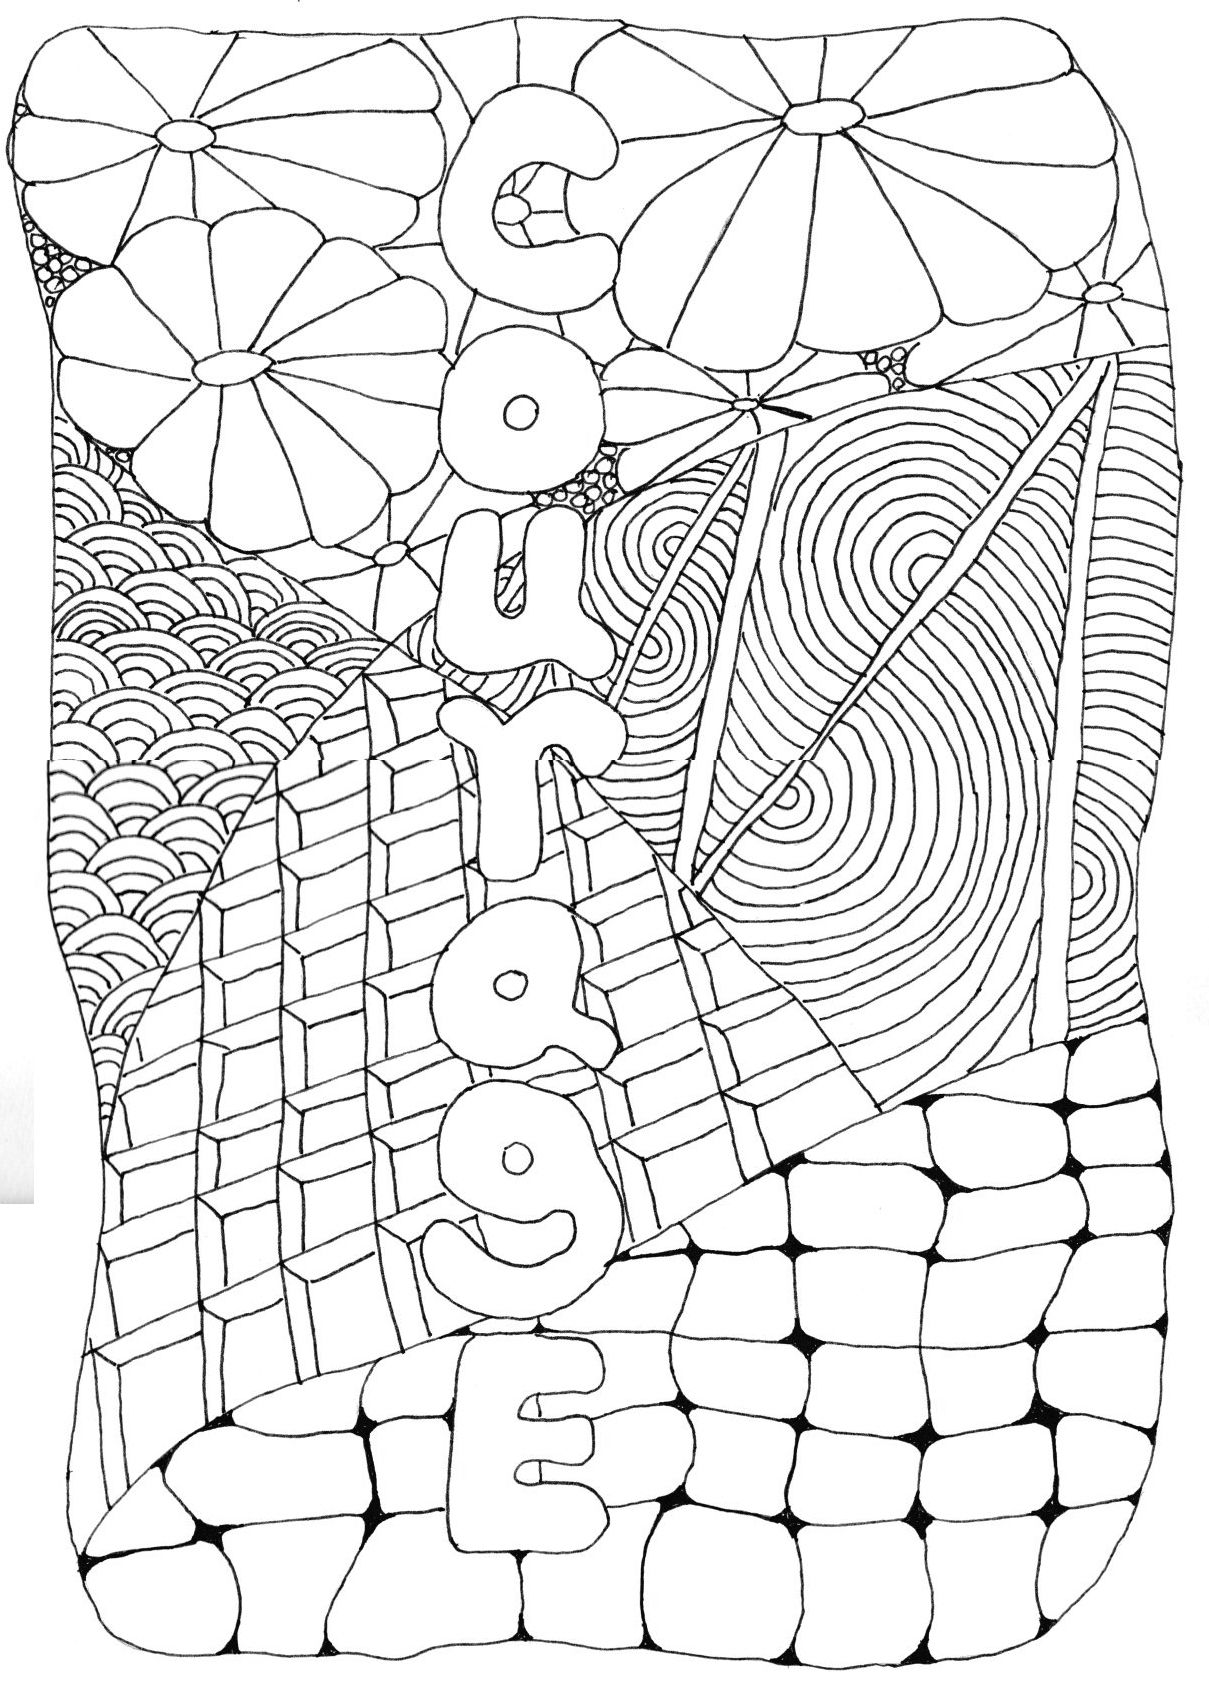 Adult Coloring Page Courage Coloring Pages Adult Coloring Page